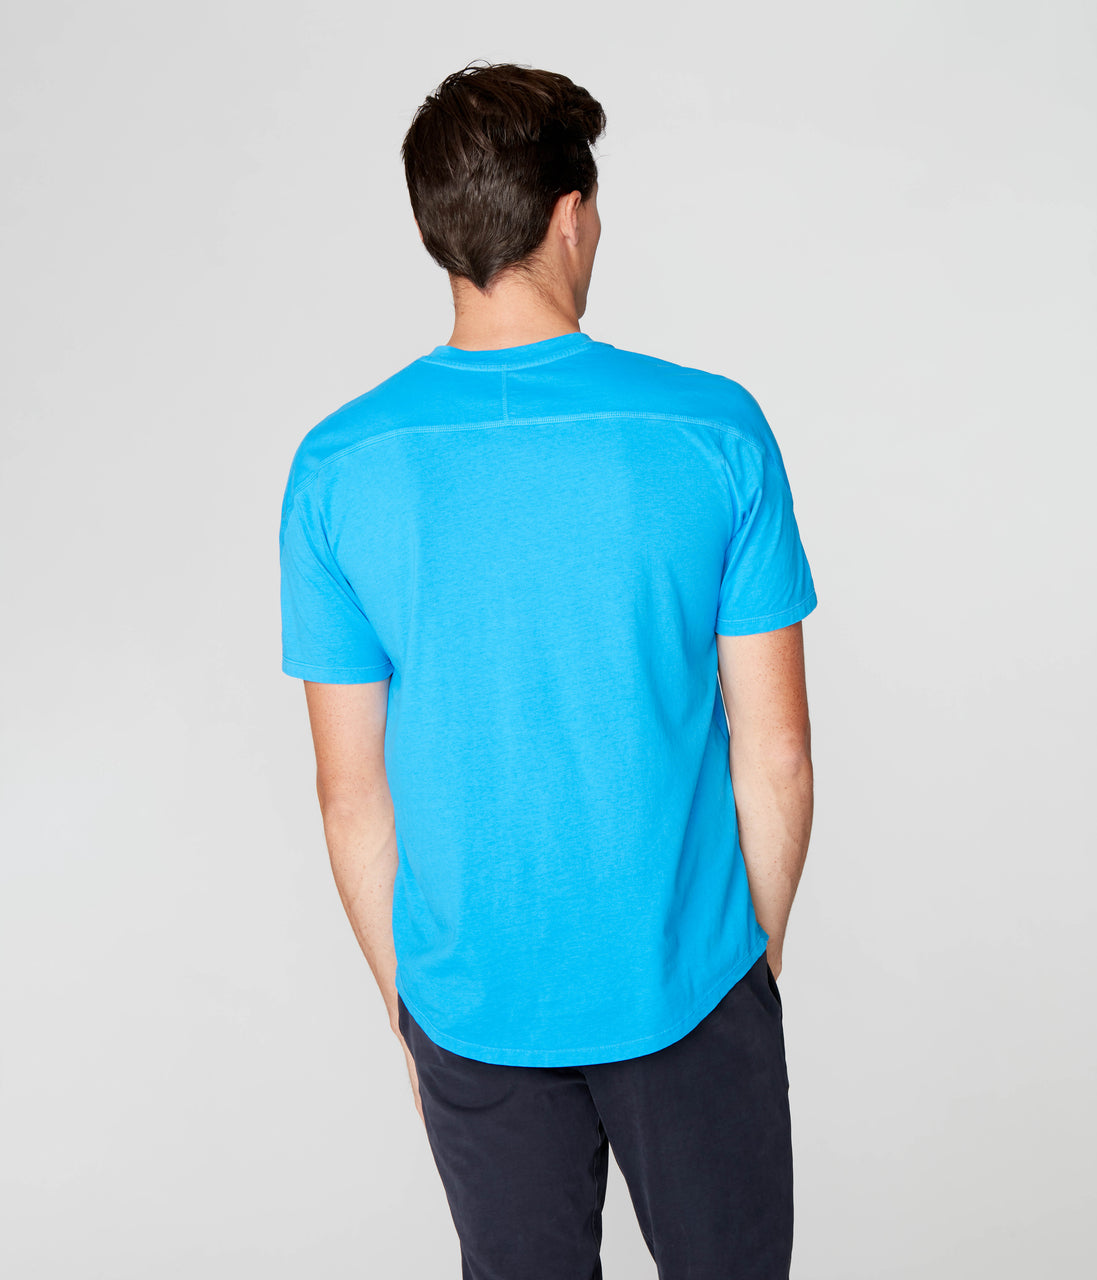 Victory V-Notch in Premium Cotton Jersey  - French Blue - Good Man Brand - Victory V-Notch in Premium Cotton Jersey  - French Blue